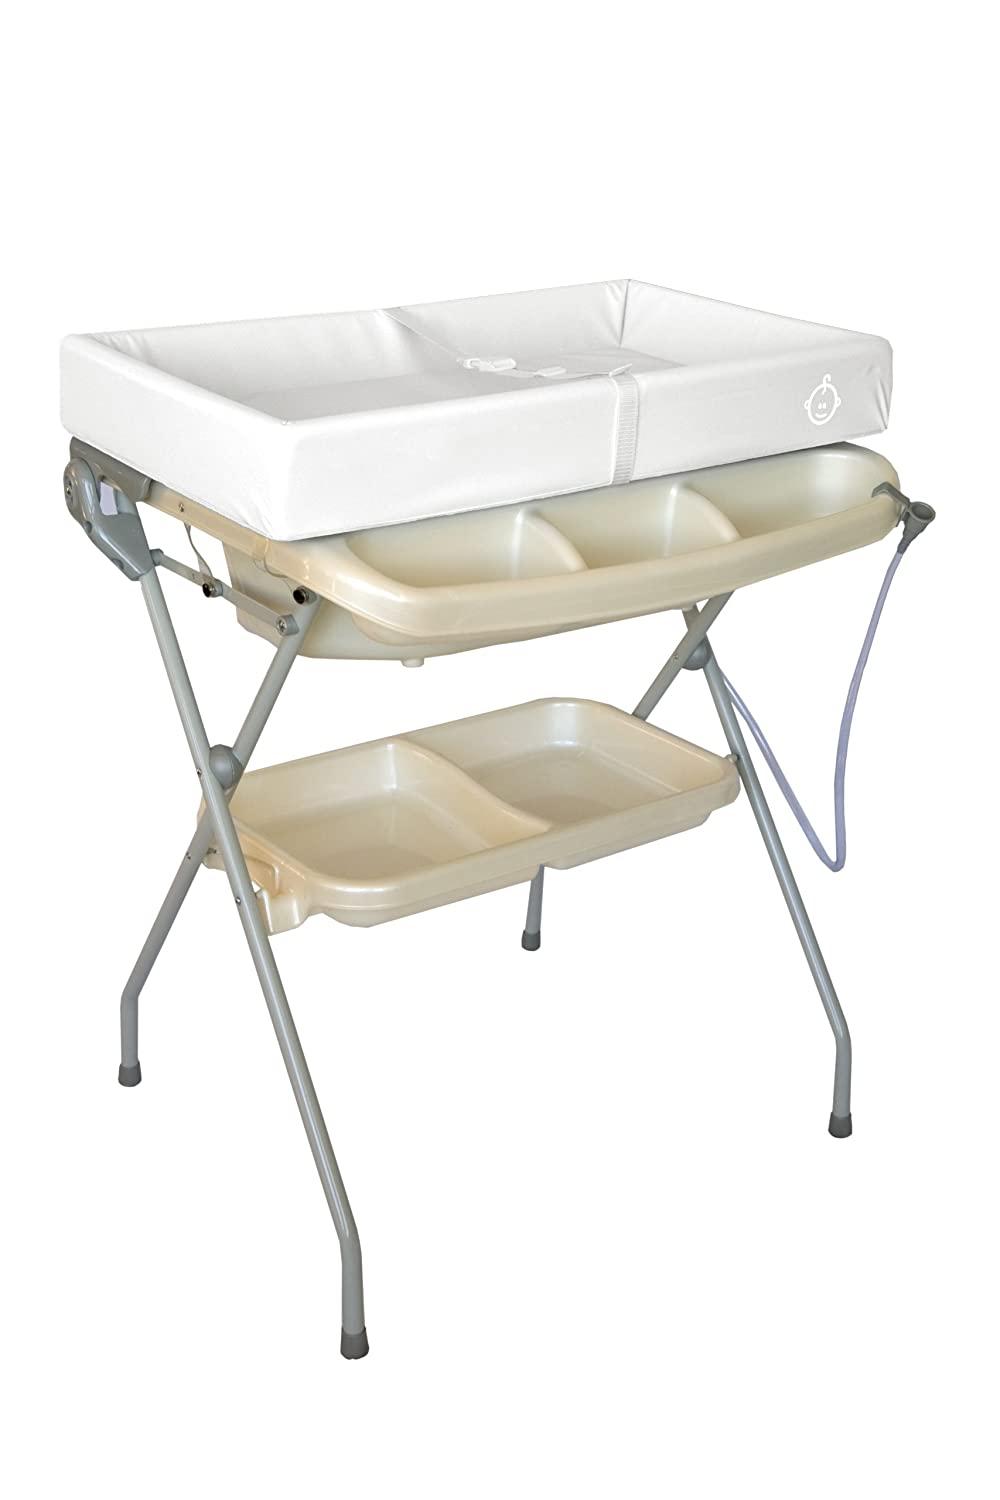 Awesome Amazon.com : Baby Diego Bathinette Posh, Pearl : Baby Bathing Seats And Tubs  : Baby